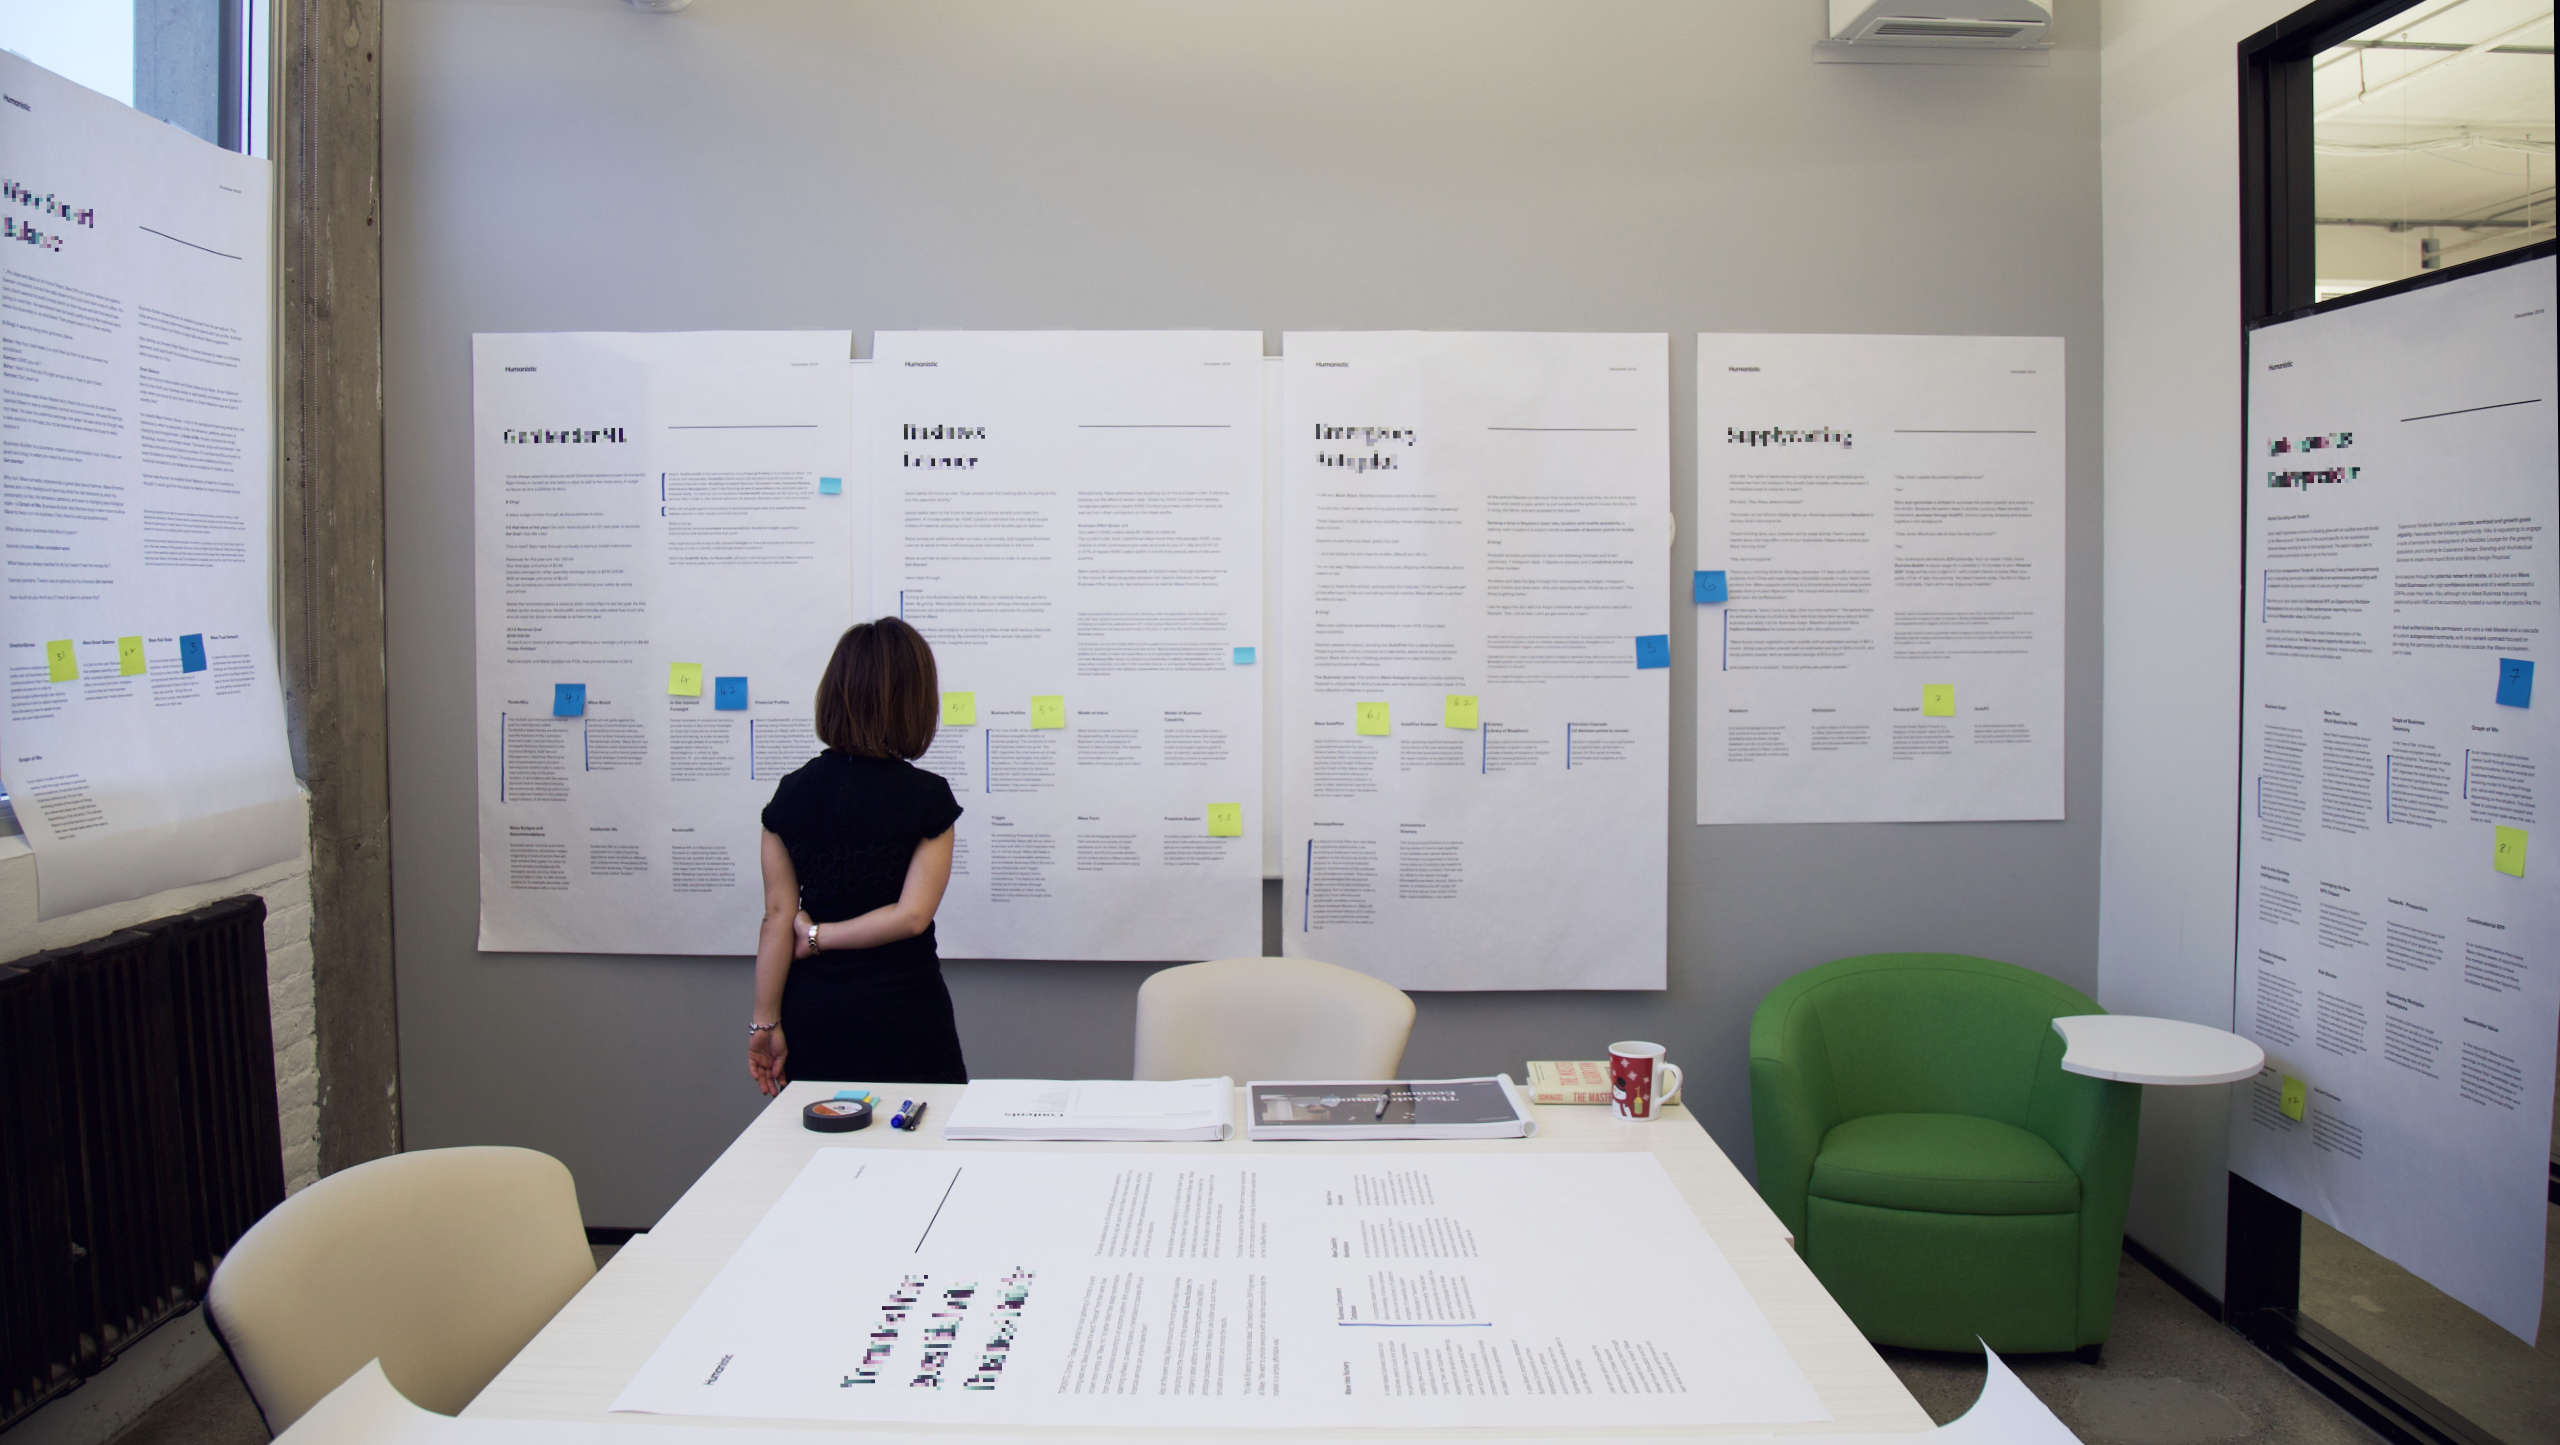 A woman standing in a board room, inspecting a large poster of a project deliverable